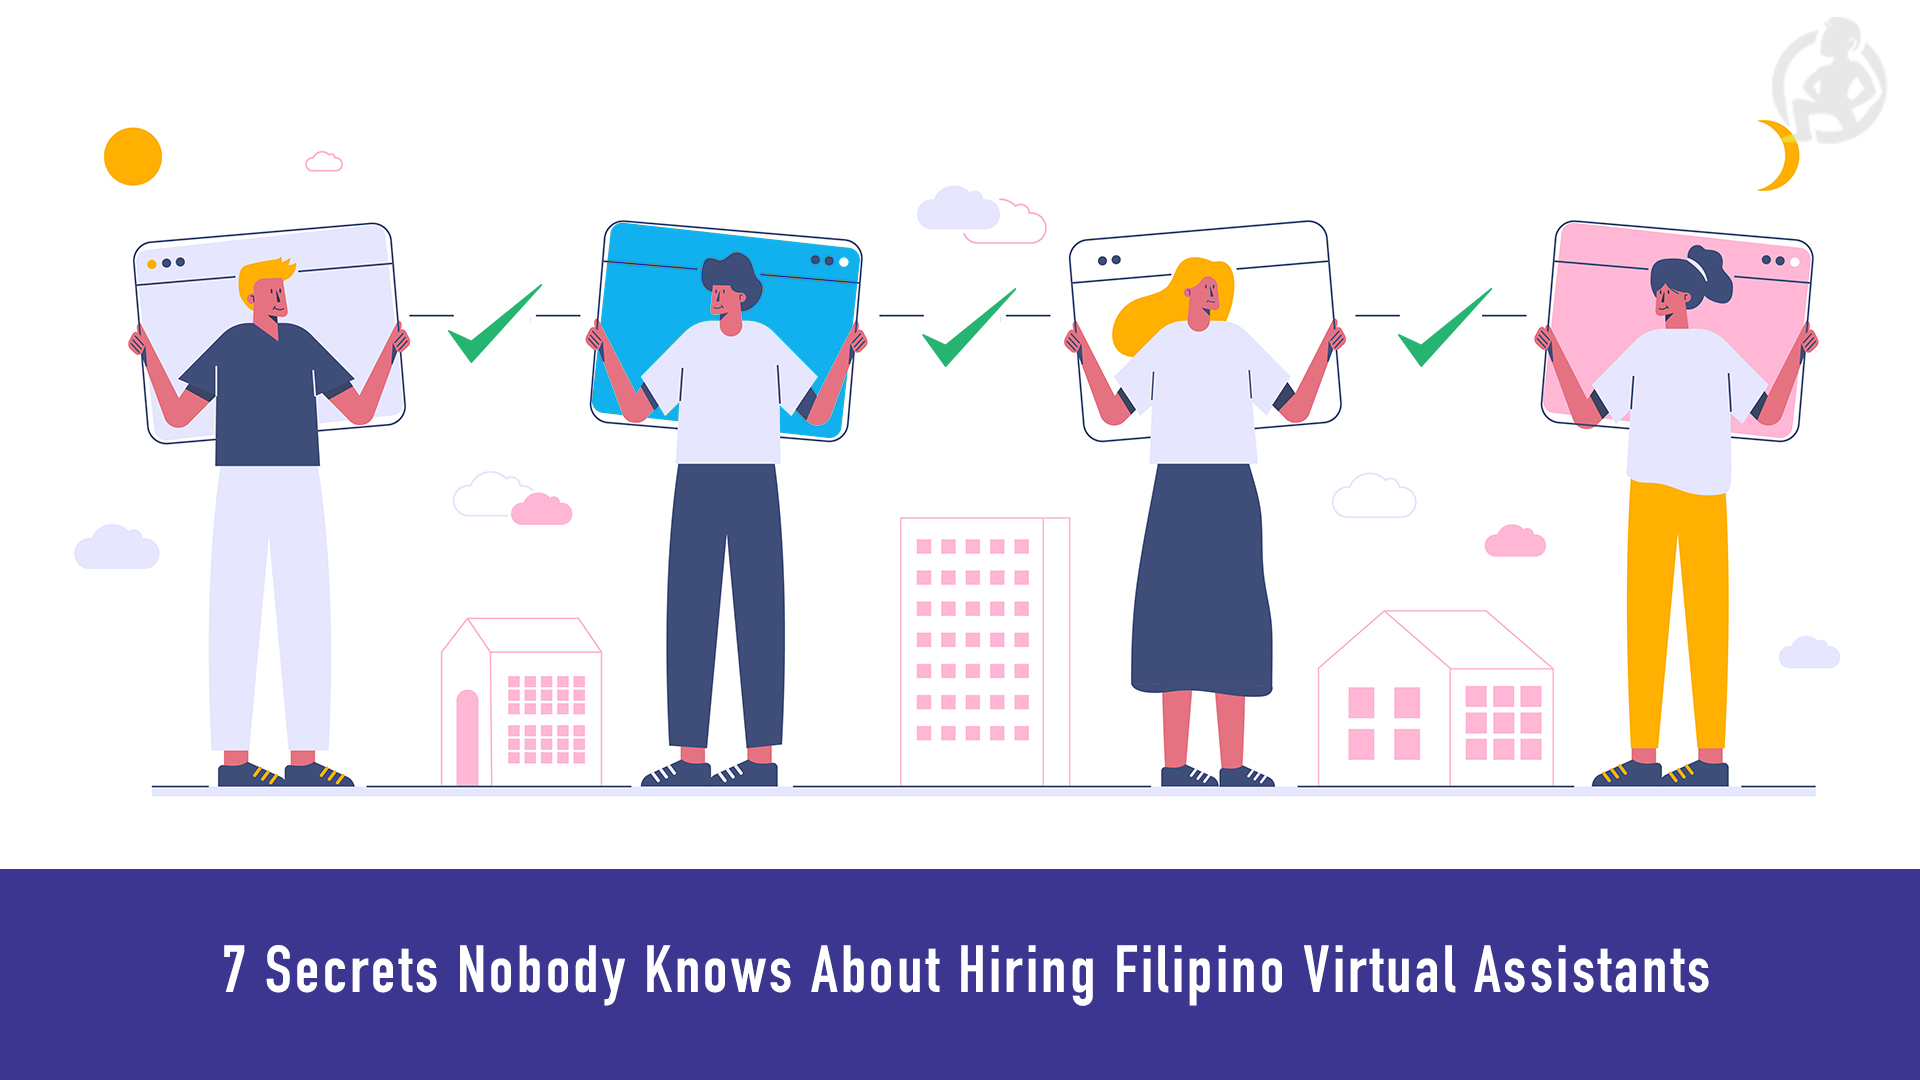 7 Secrets Nobody Knows About Hiring Filipino Virtual Assistants